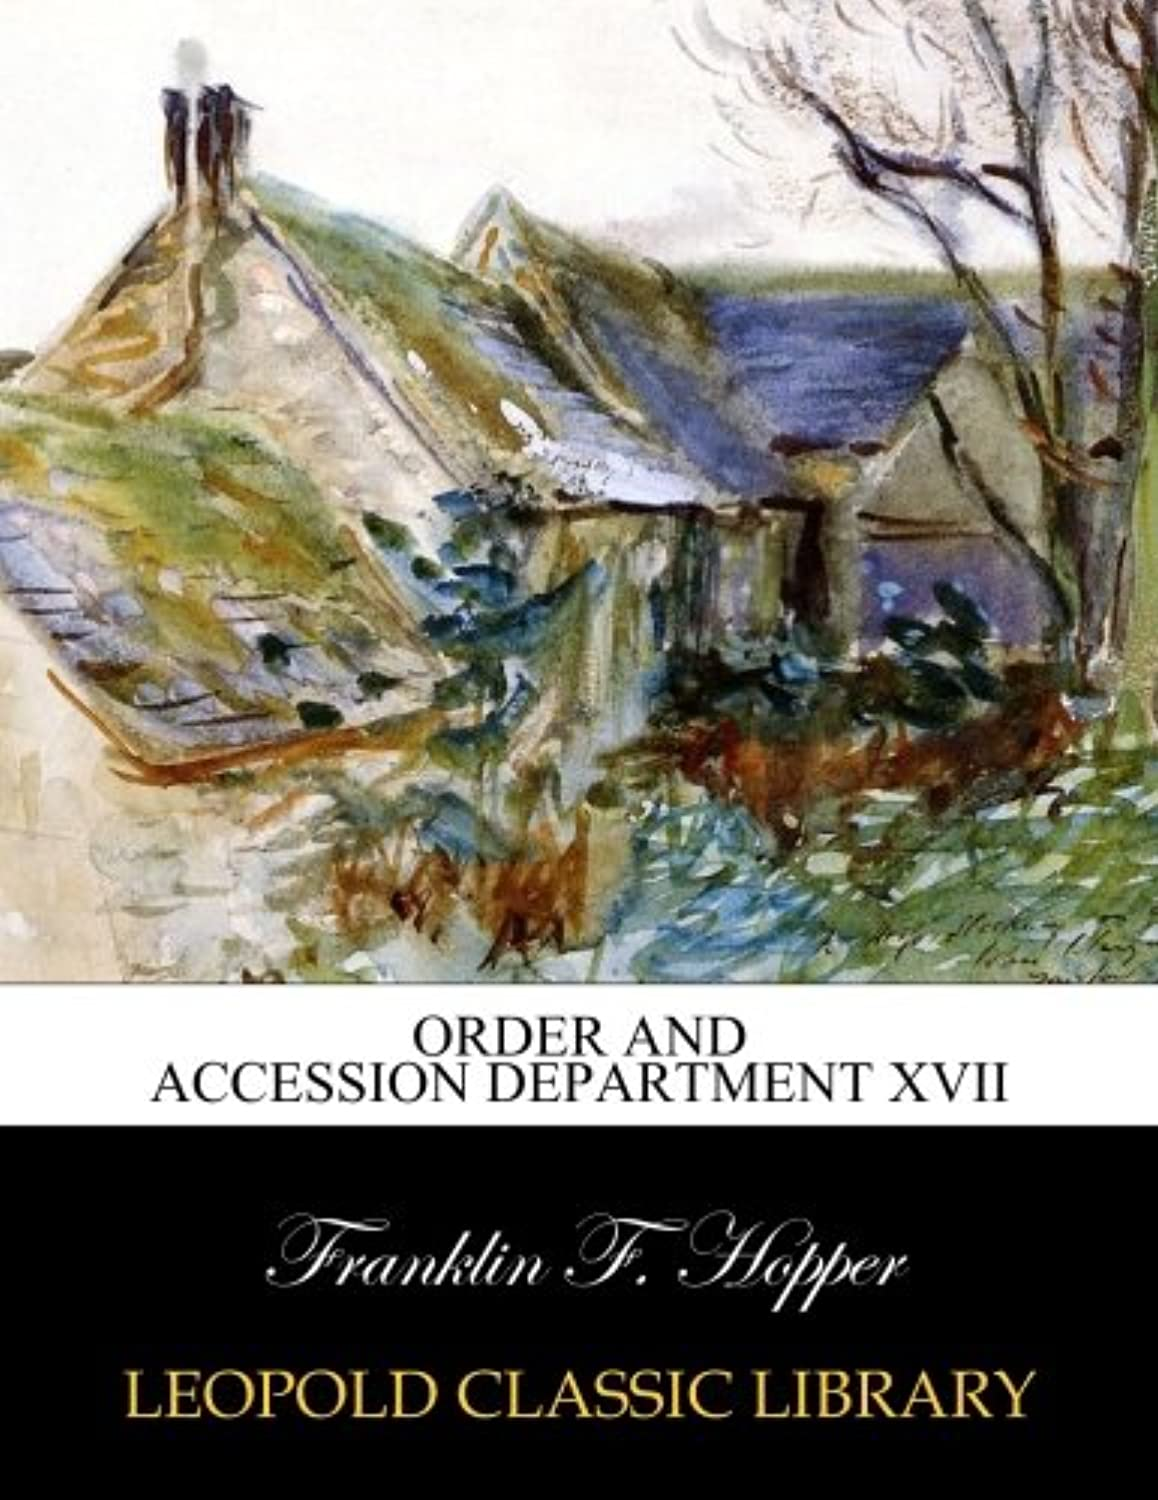 Order and accession department XVII